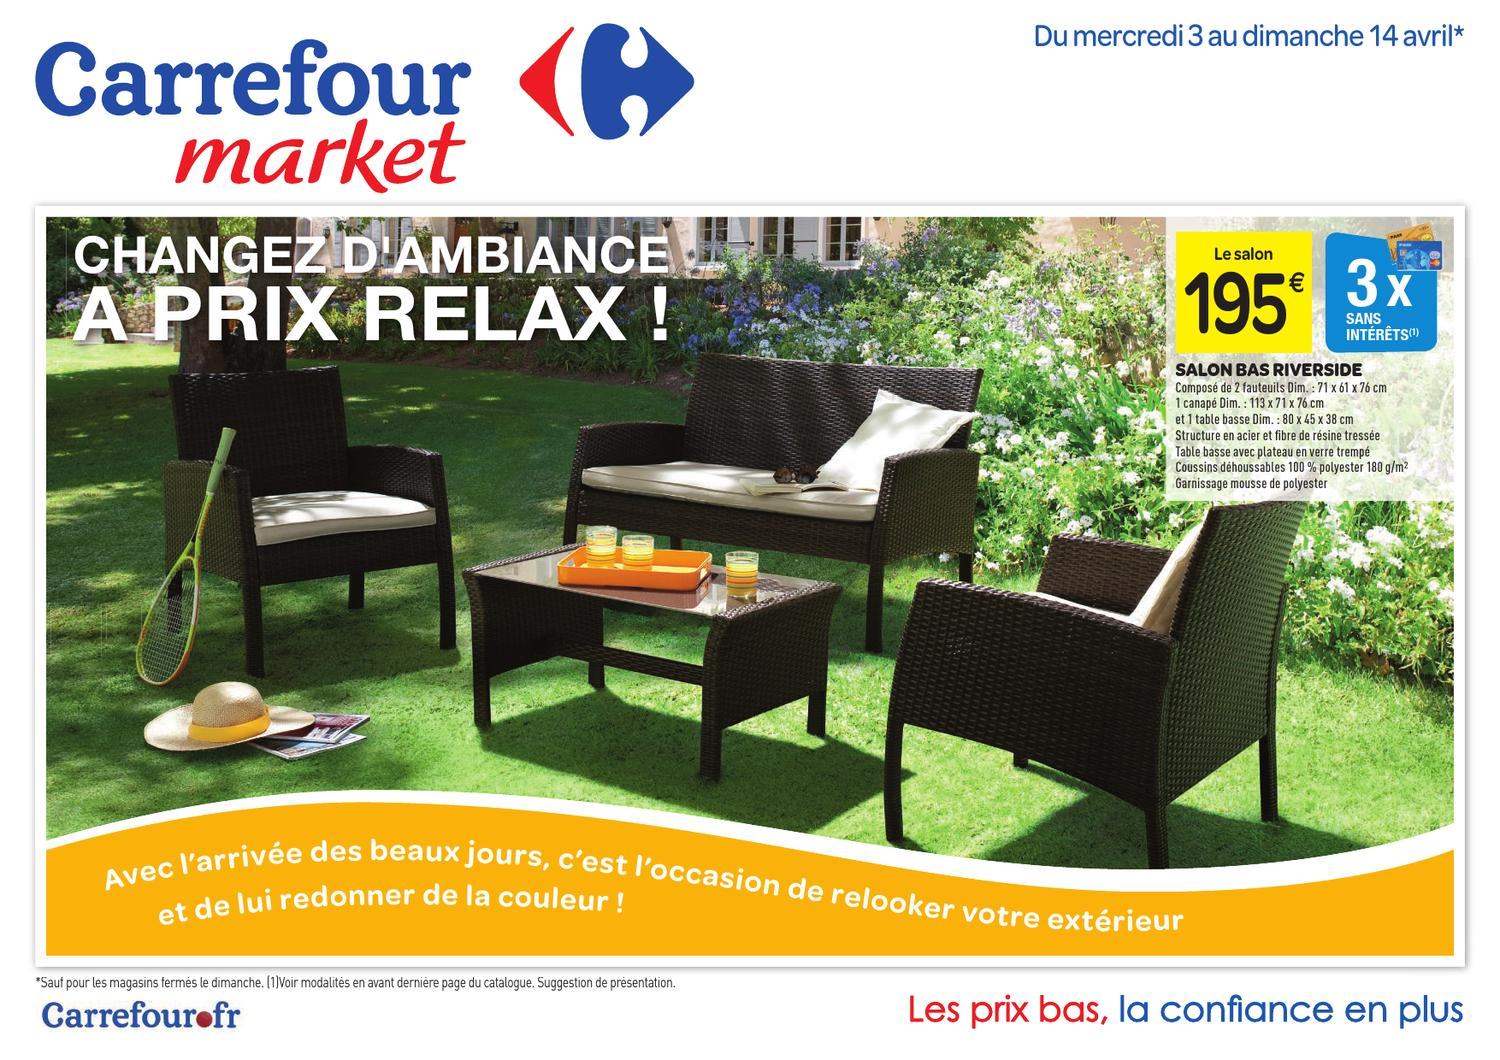 Carrefour_3-14.4-2013 by Proomo France - issuu